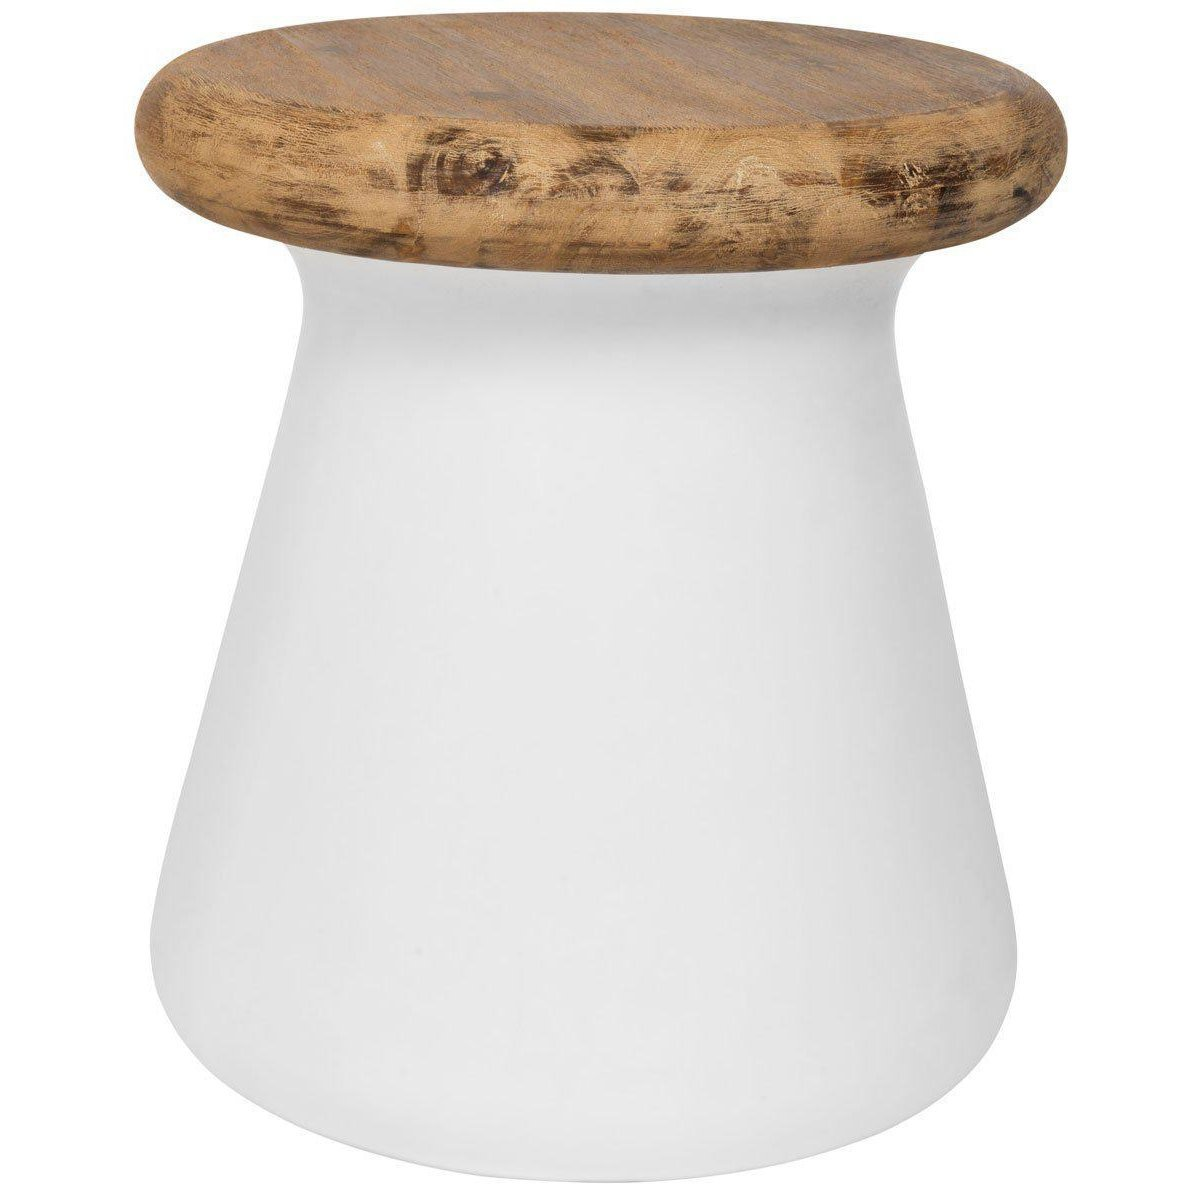 button modern concrete round inch accent table indoor outdoor indooroutdoor side small black brass drum white coffee and end tables ava furniture corner cabinet half moon piano